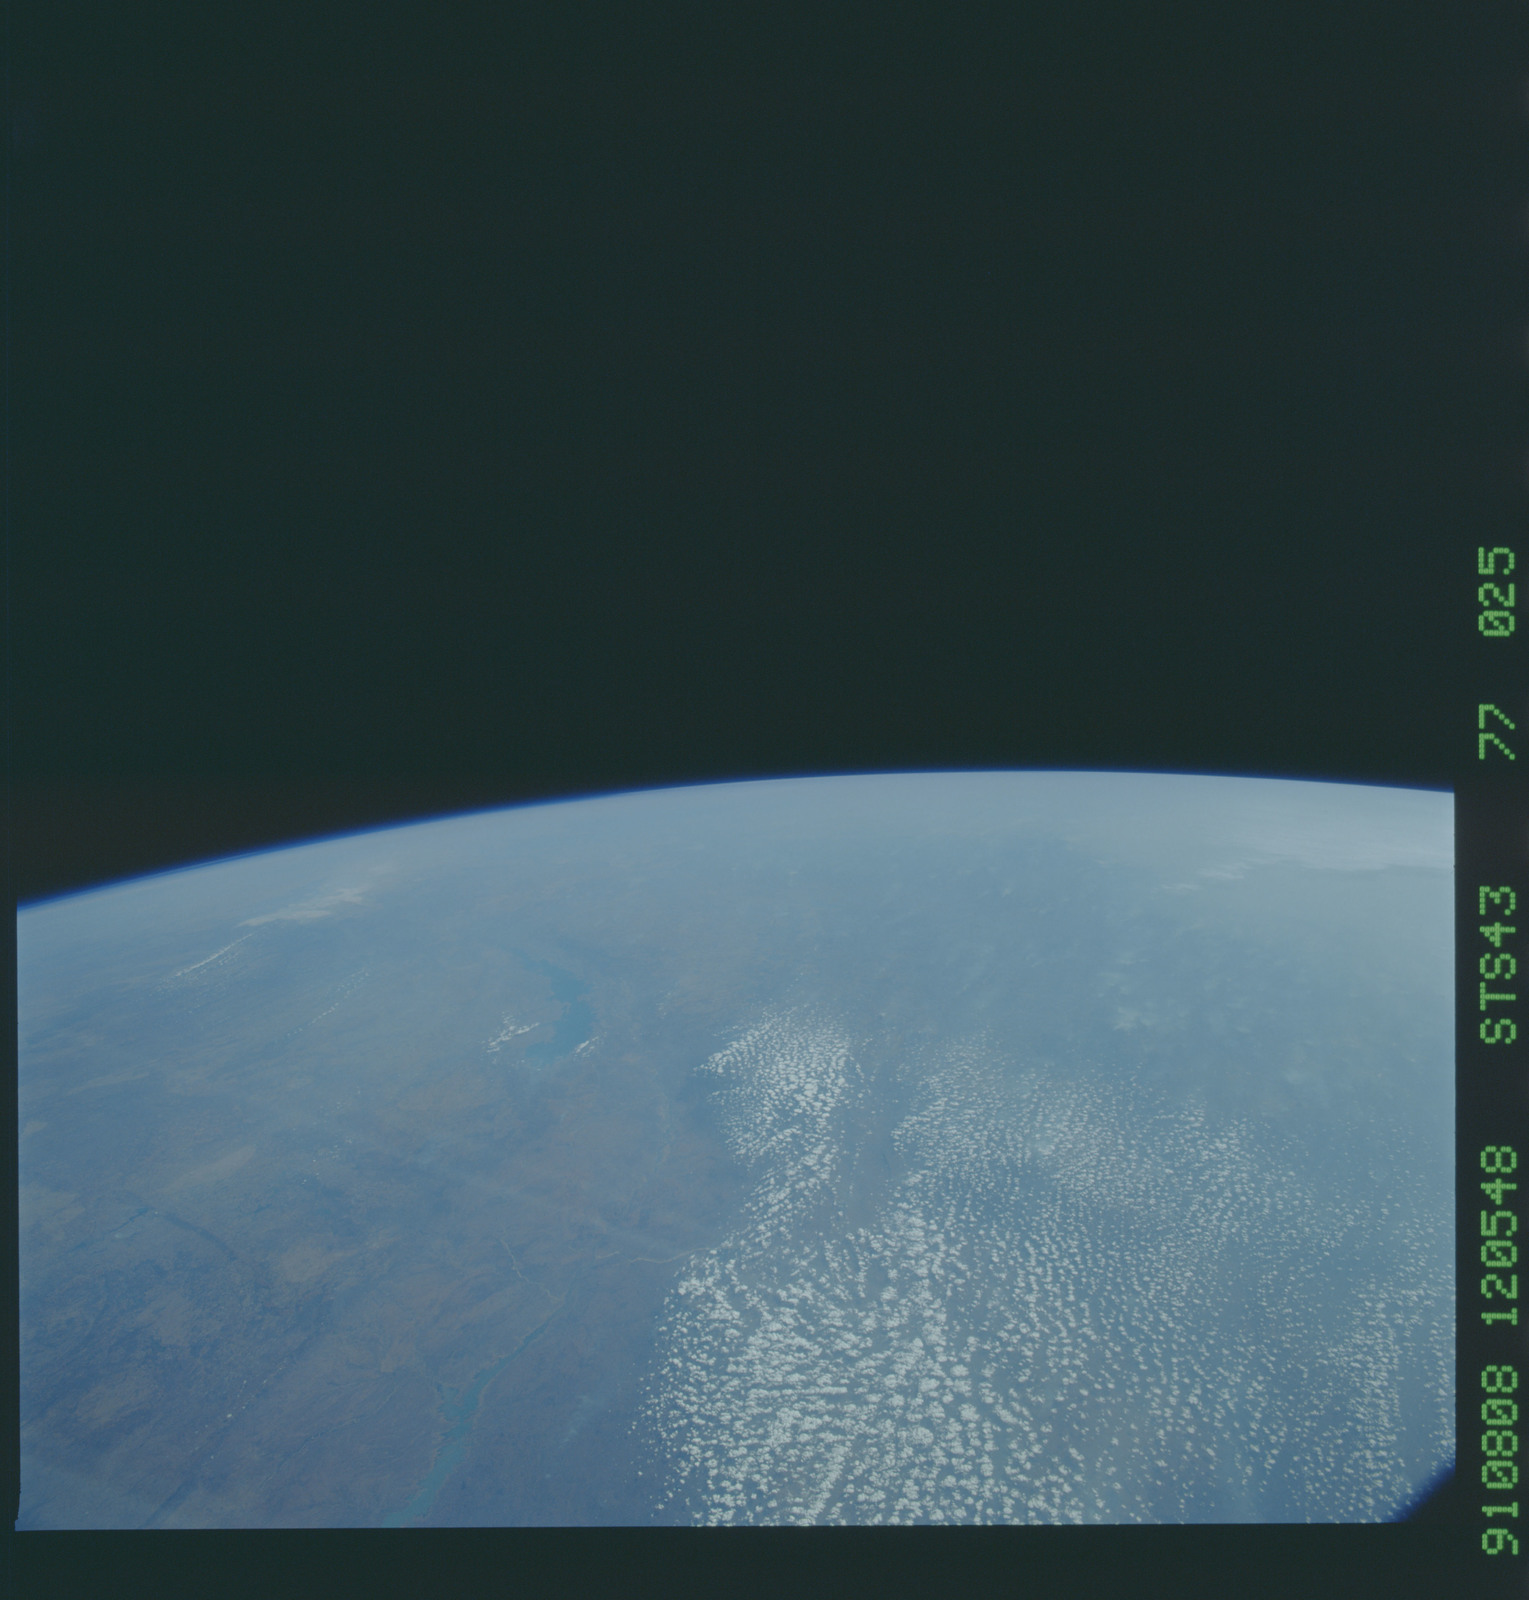 S43-77-025 - STS-043 - STS-43 earth observations